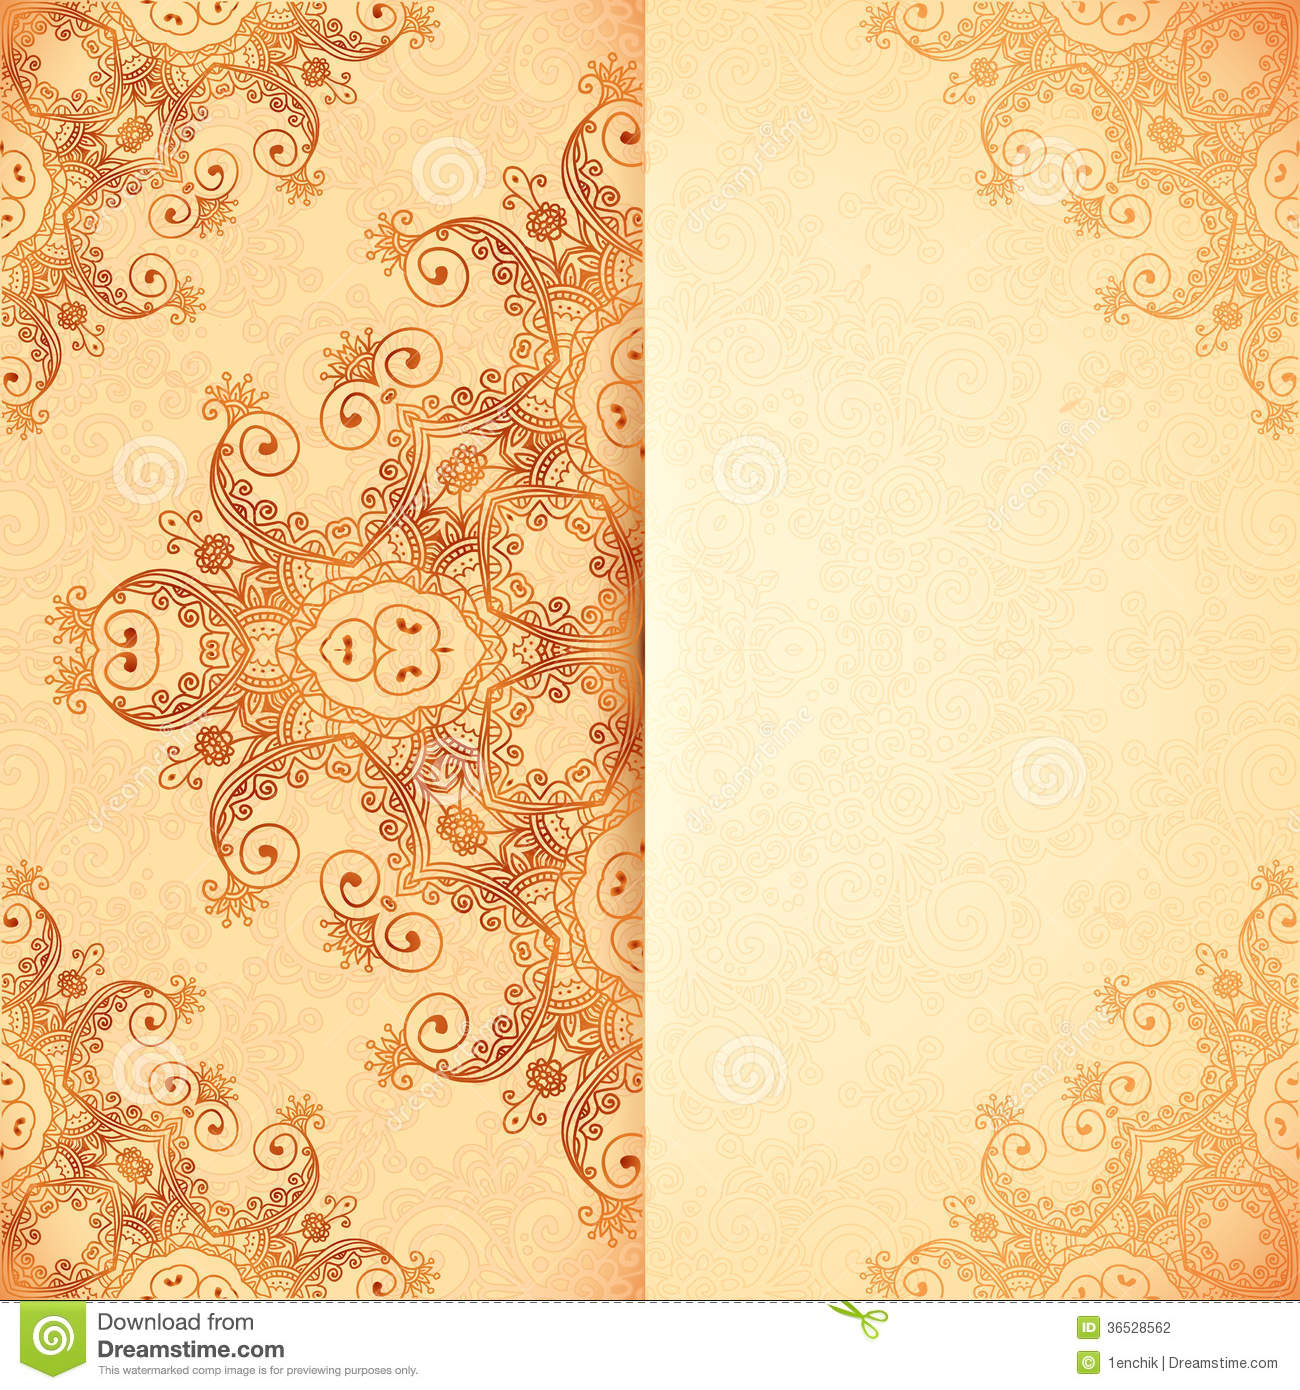 Ornate Vintage Template In Indian Mehndi Style